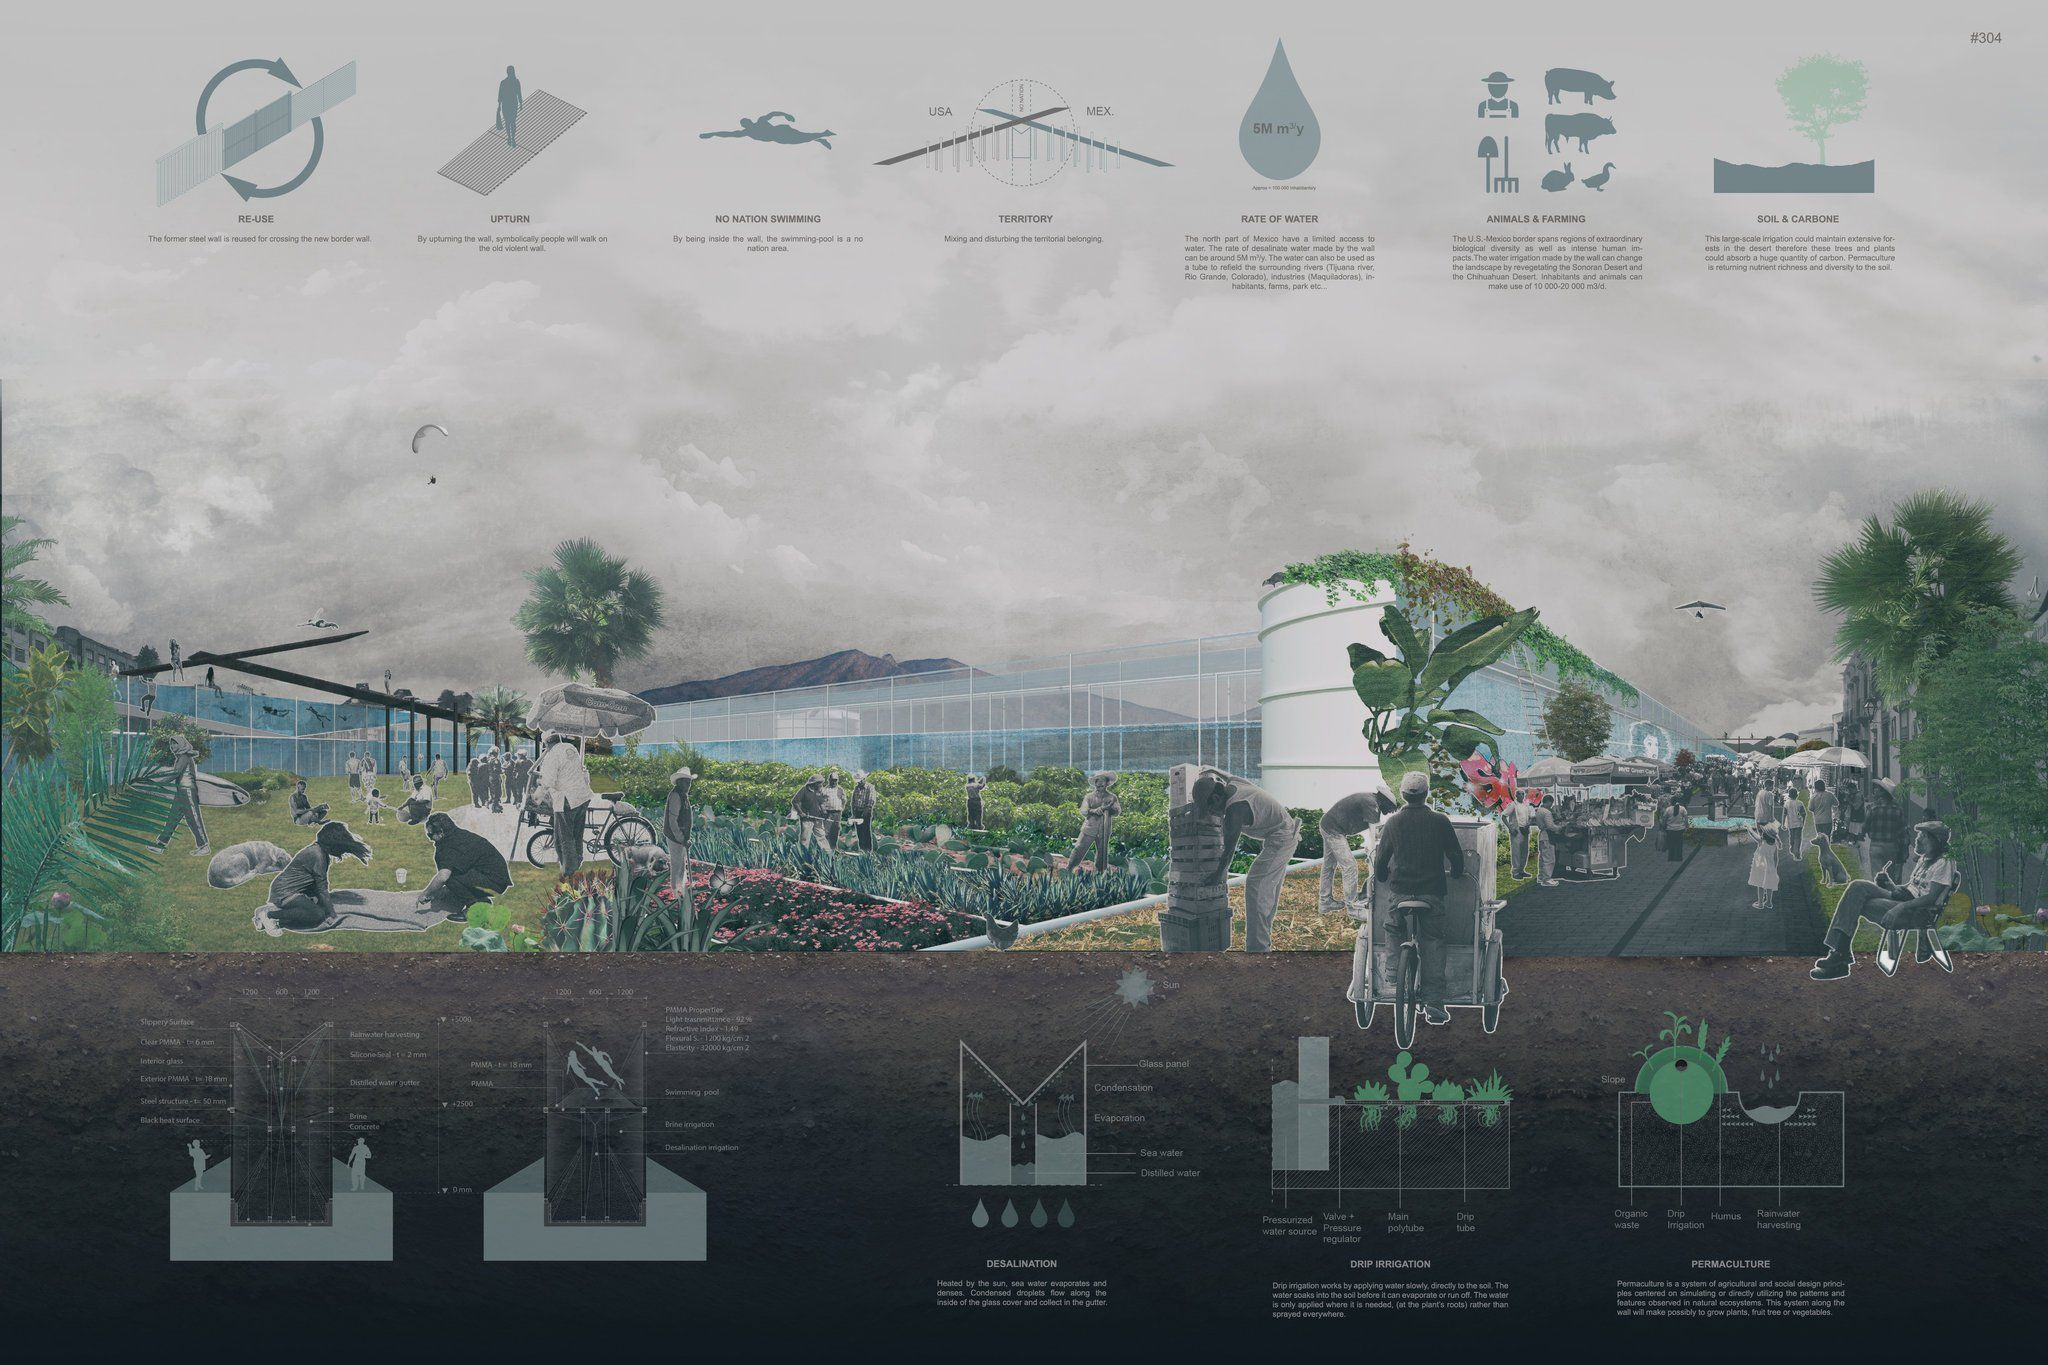 Trump Plans To View Wall Prototypes Here Are Some He Won T See Published 2018 Us Mexico Border Wall International Design Competition Design Competitions